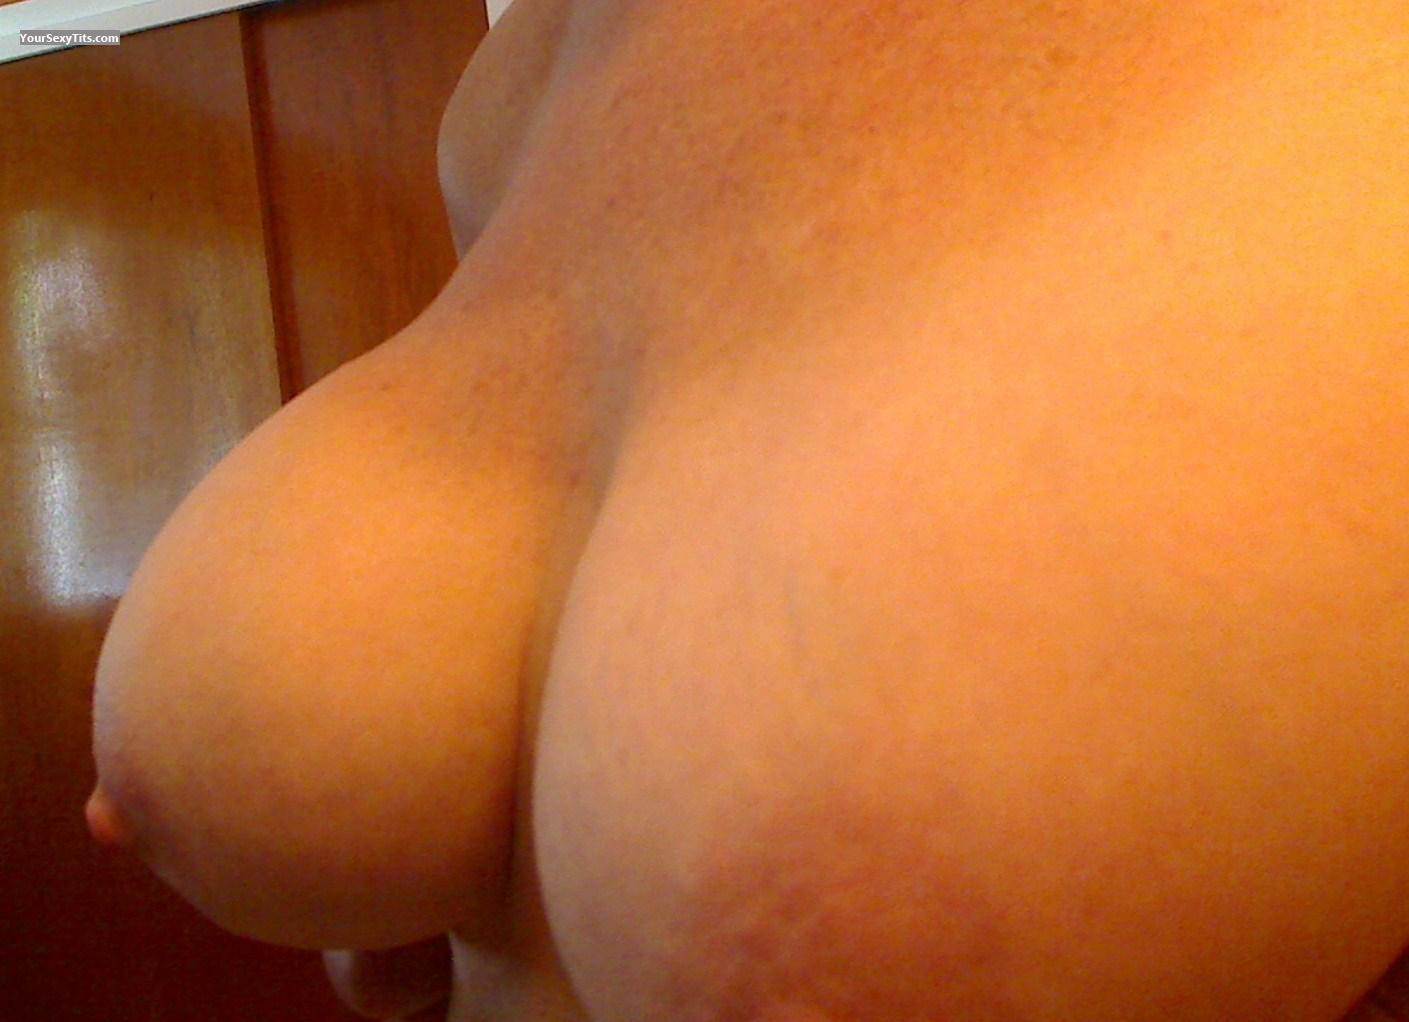 Tit Flash: Big Tits - Nanc01 from United States